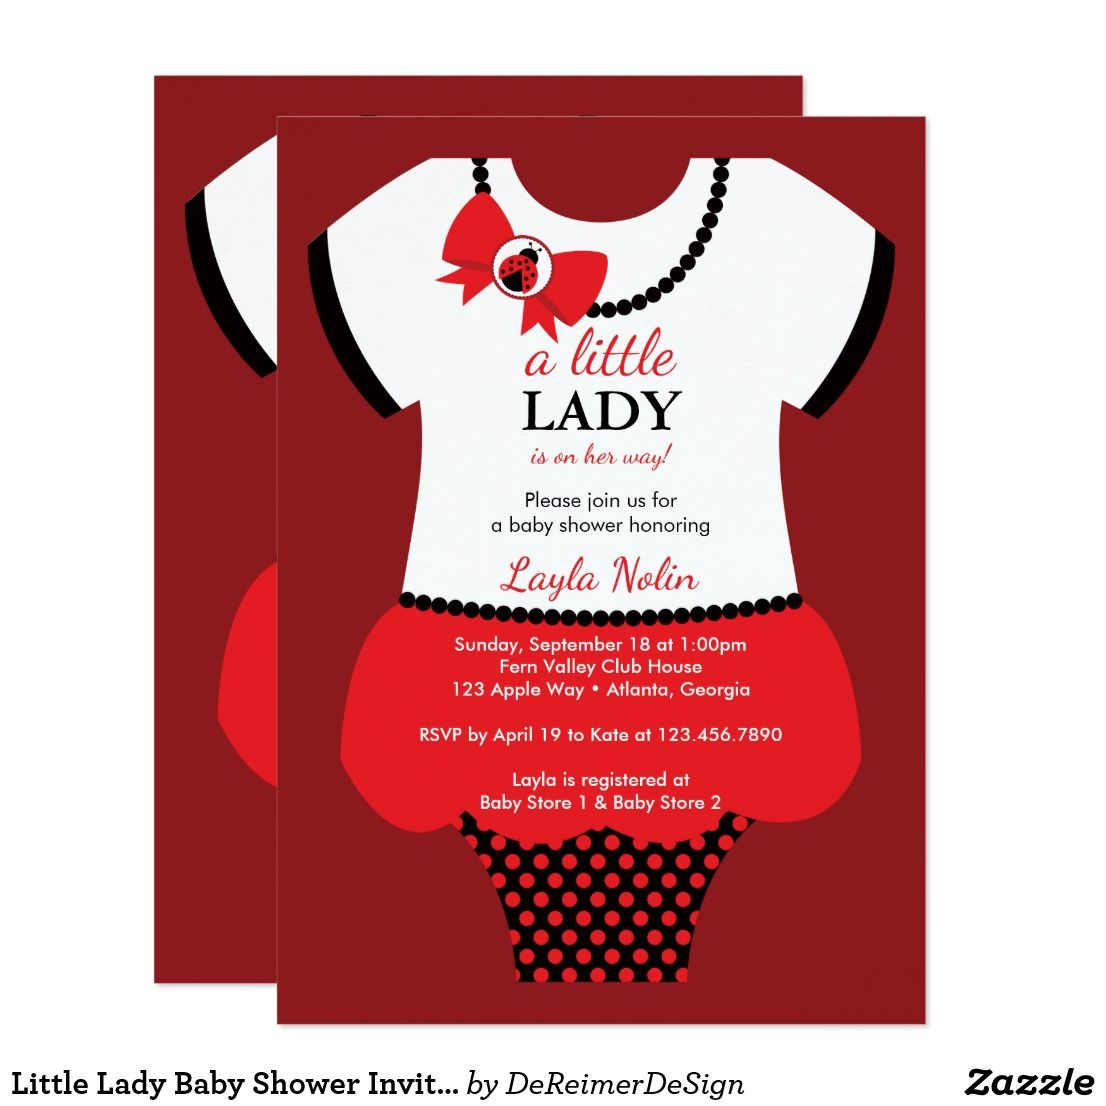 Luxury Baby Shower Invitation Pinterest Images - Invitations and ...